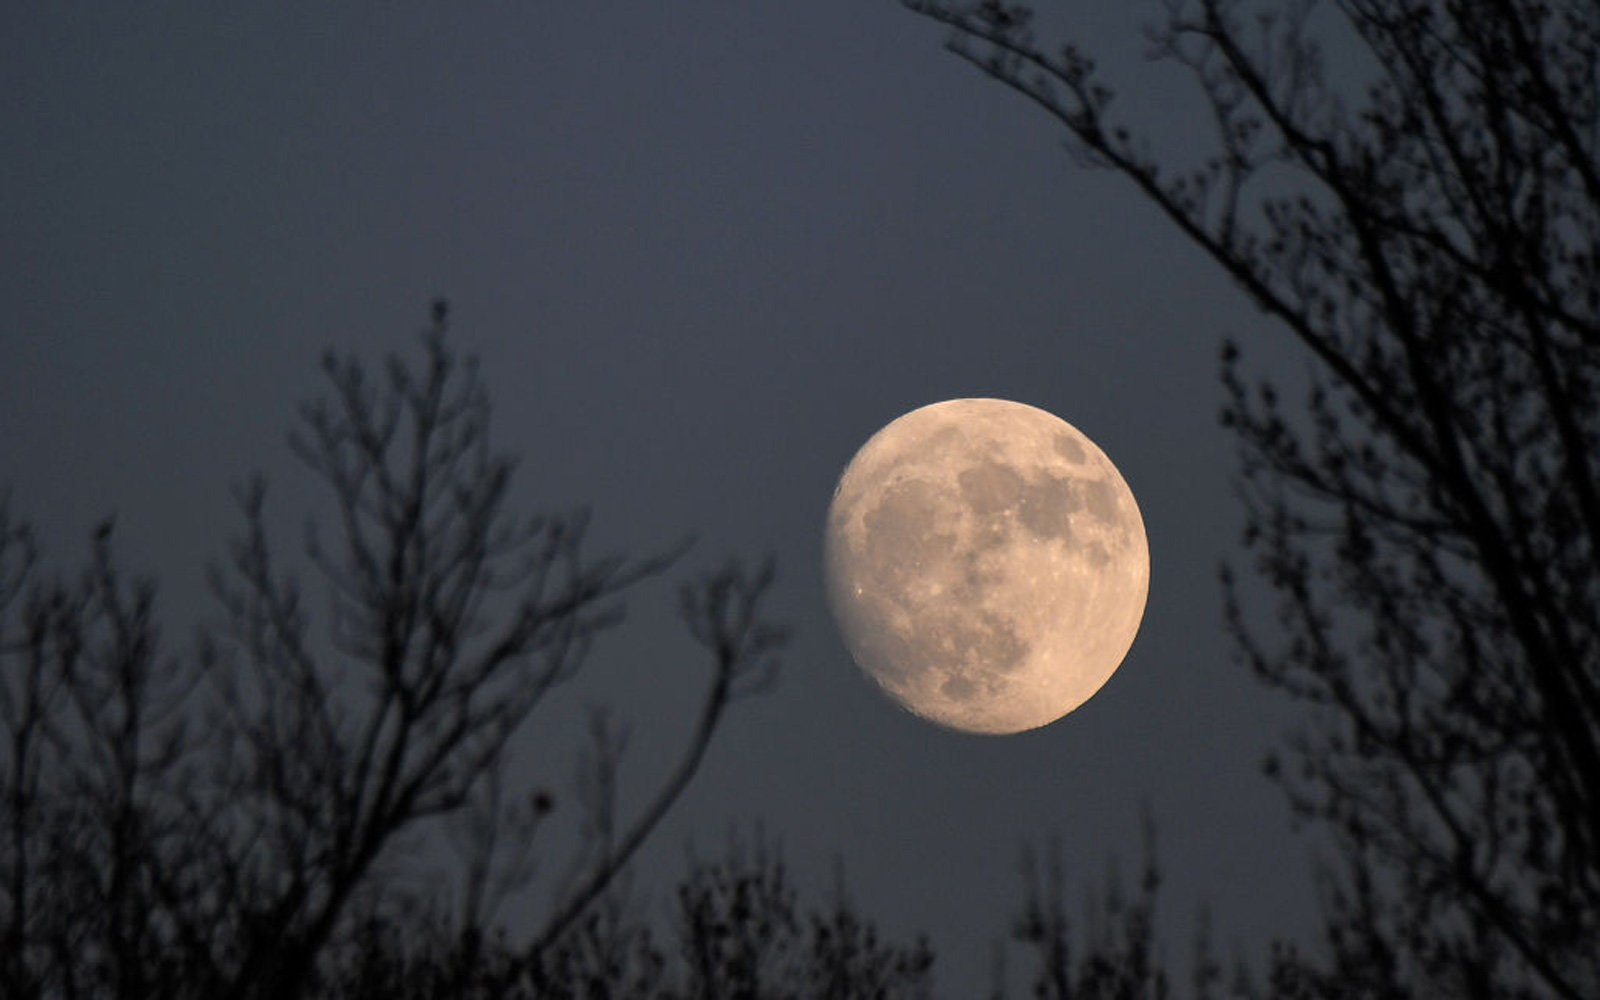 This week's 'Full Cold Moon' is the final full moon of 2019 — here's how to see it